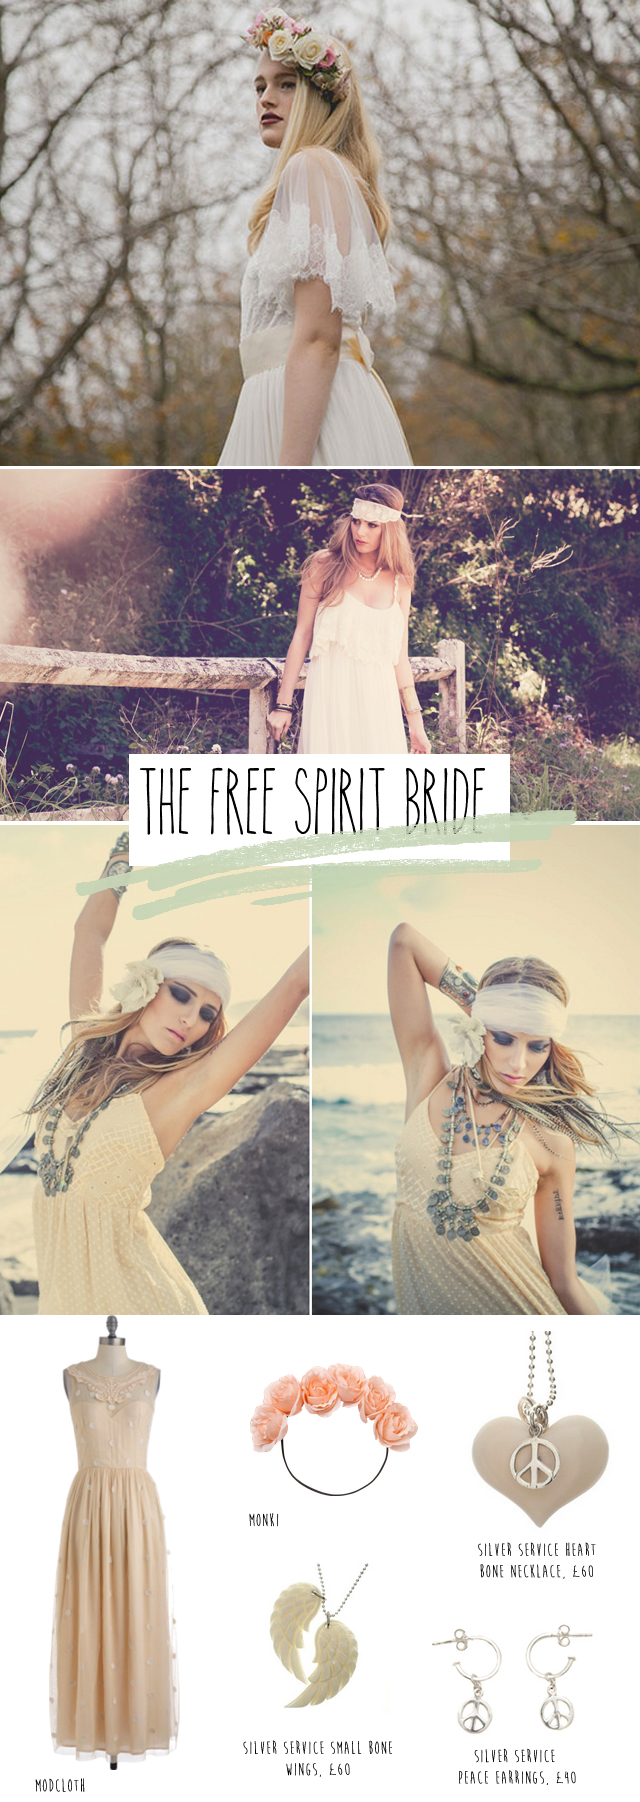 The Free Spirit Bride